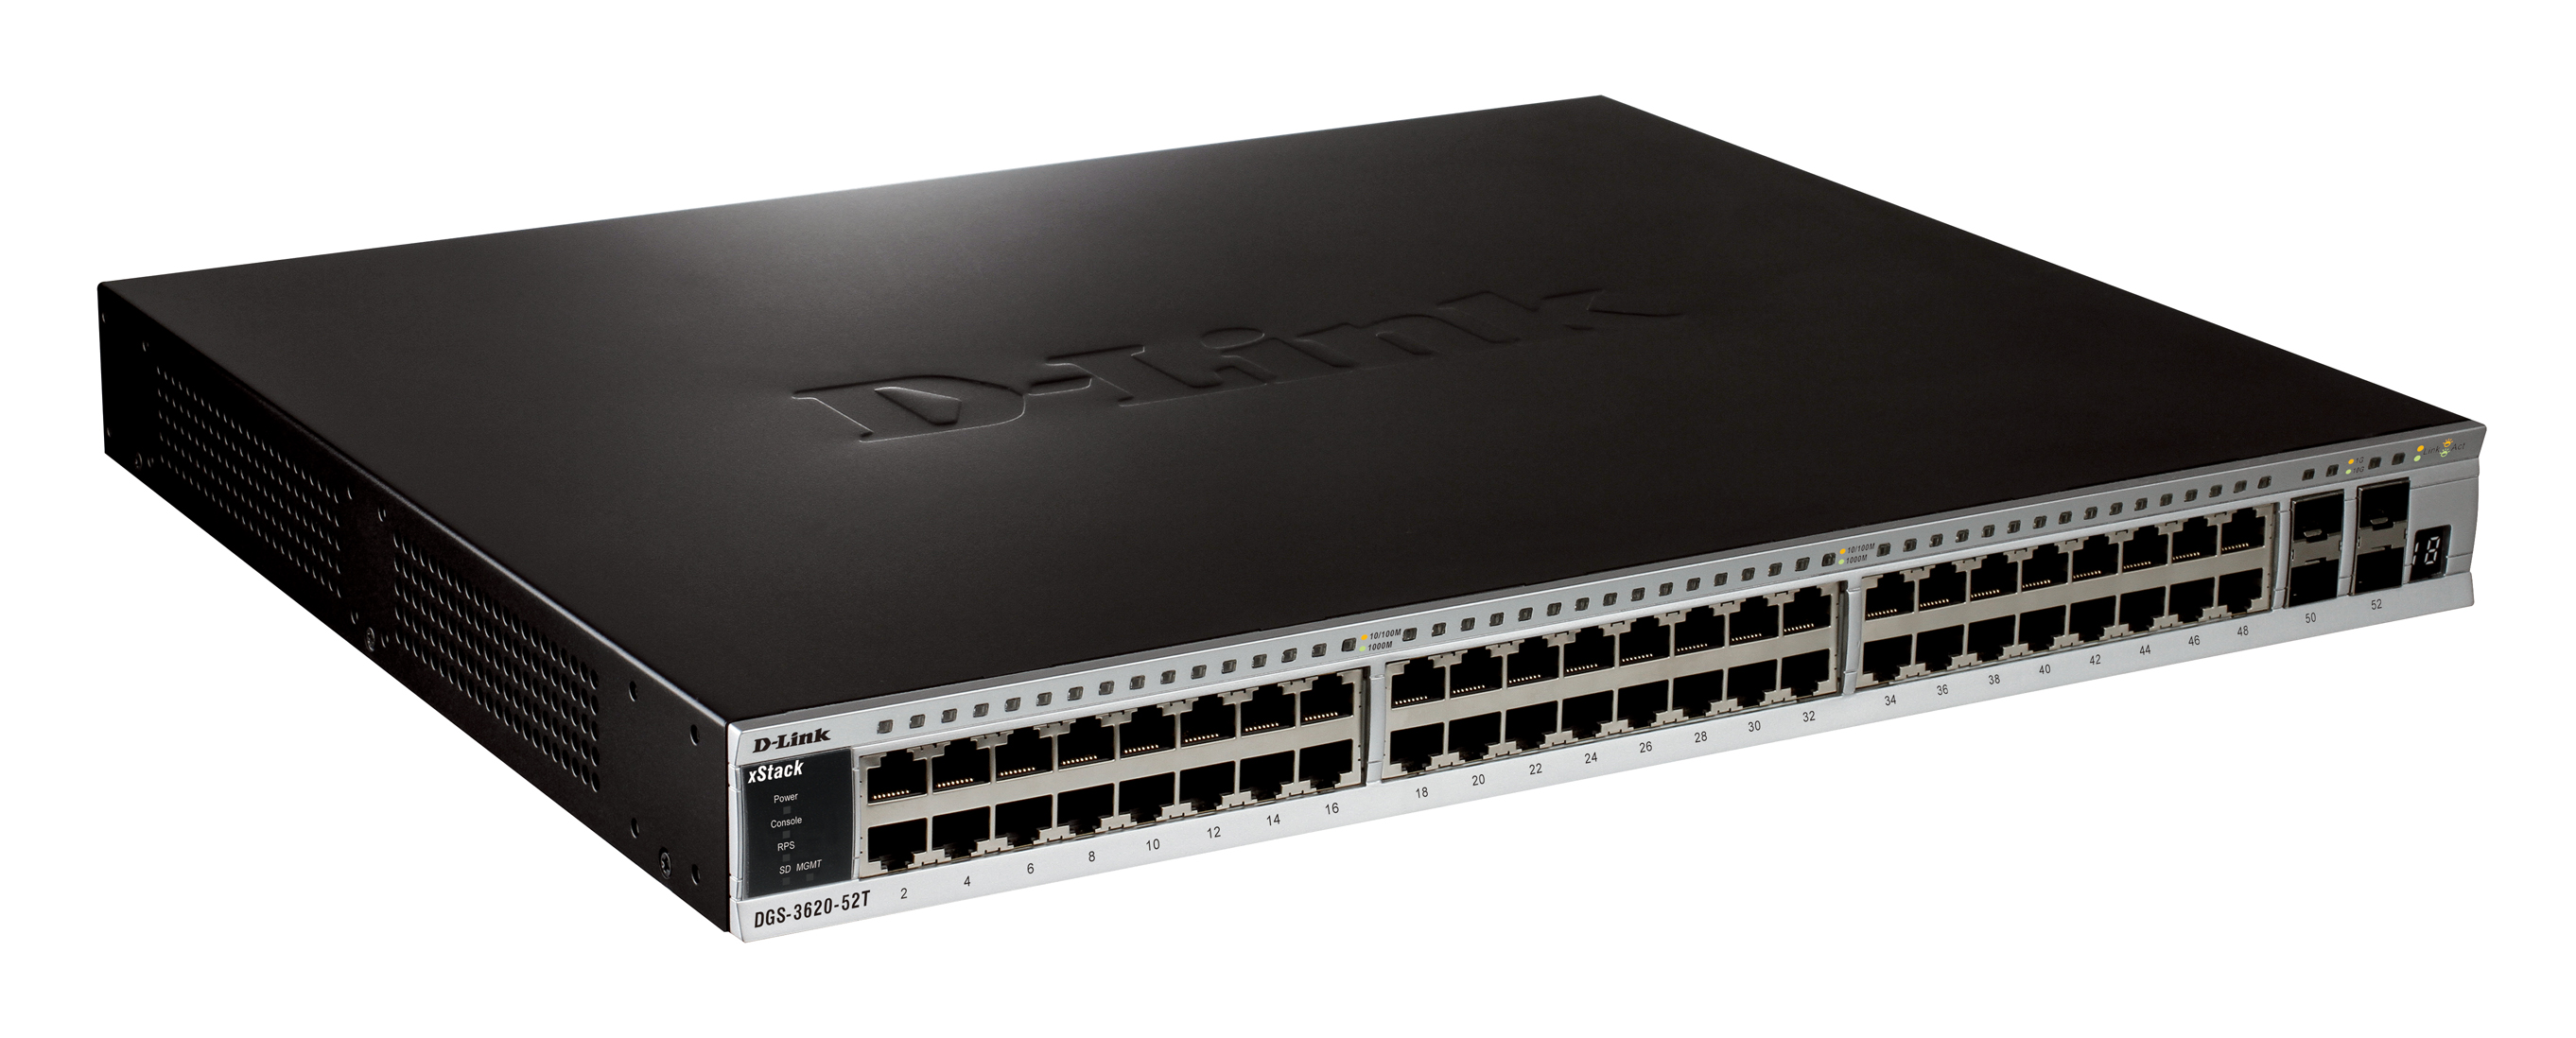 D-Link DGS-3620-52P-SI L3 Gigabit Switch Drivers for Windows Download